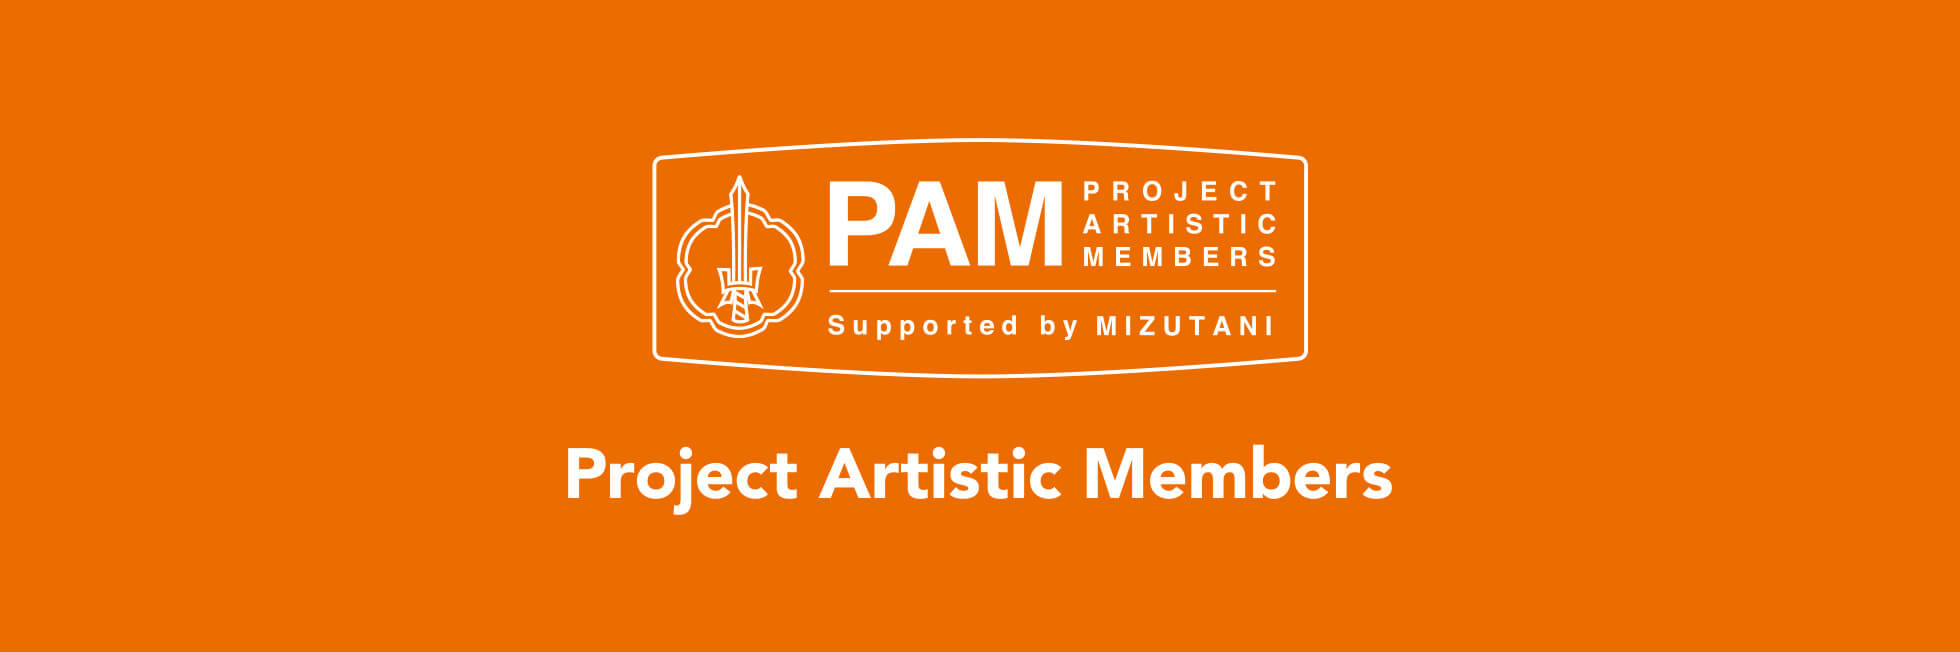 Project Artistic Members